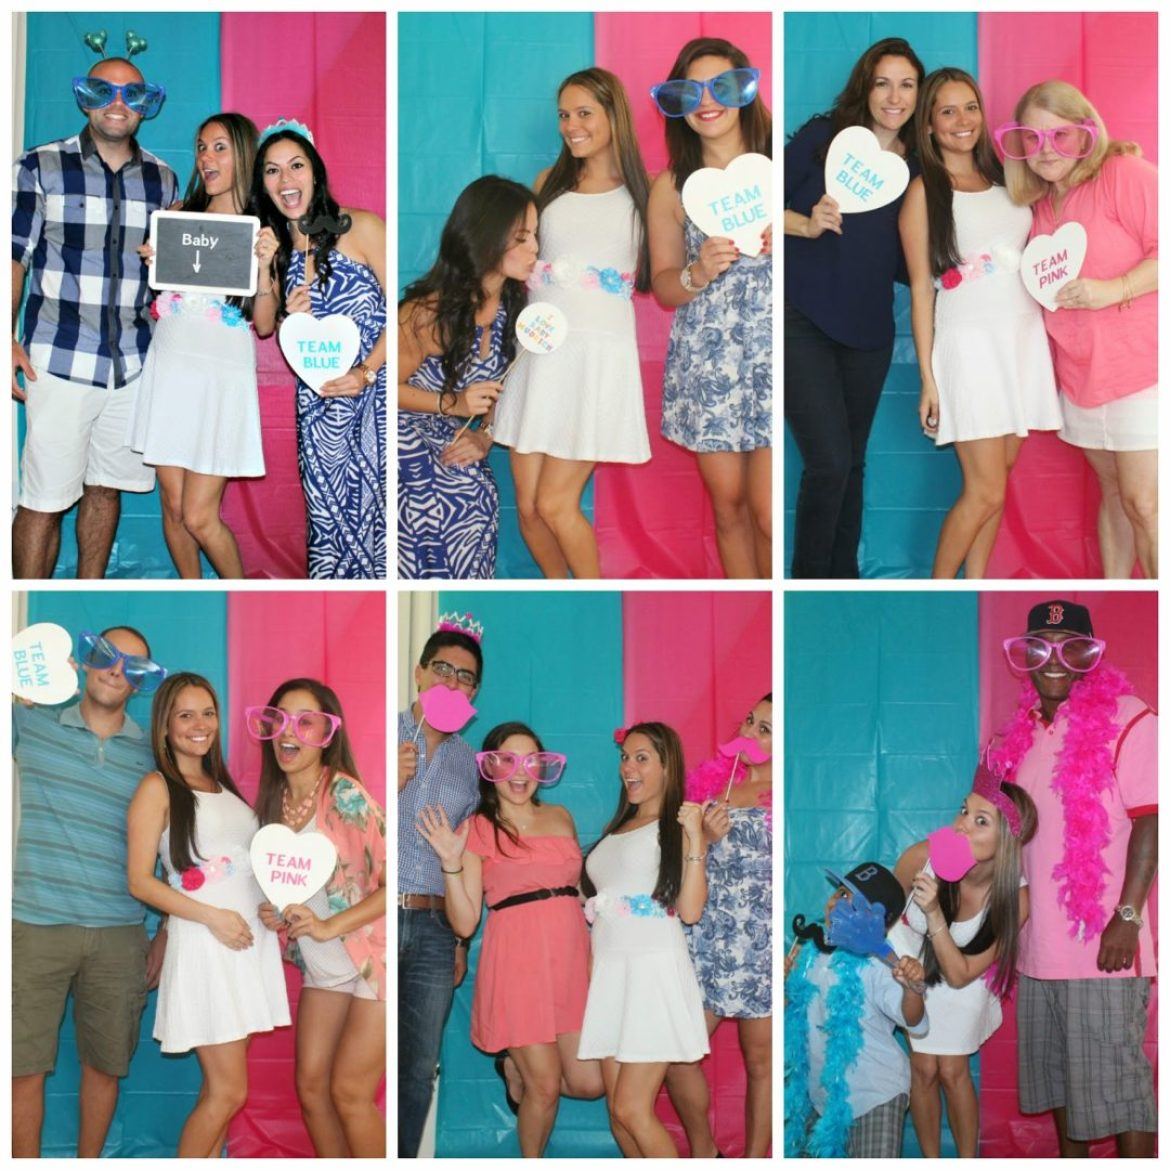 Photo Booth Groups